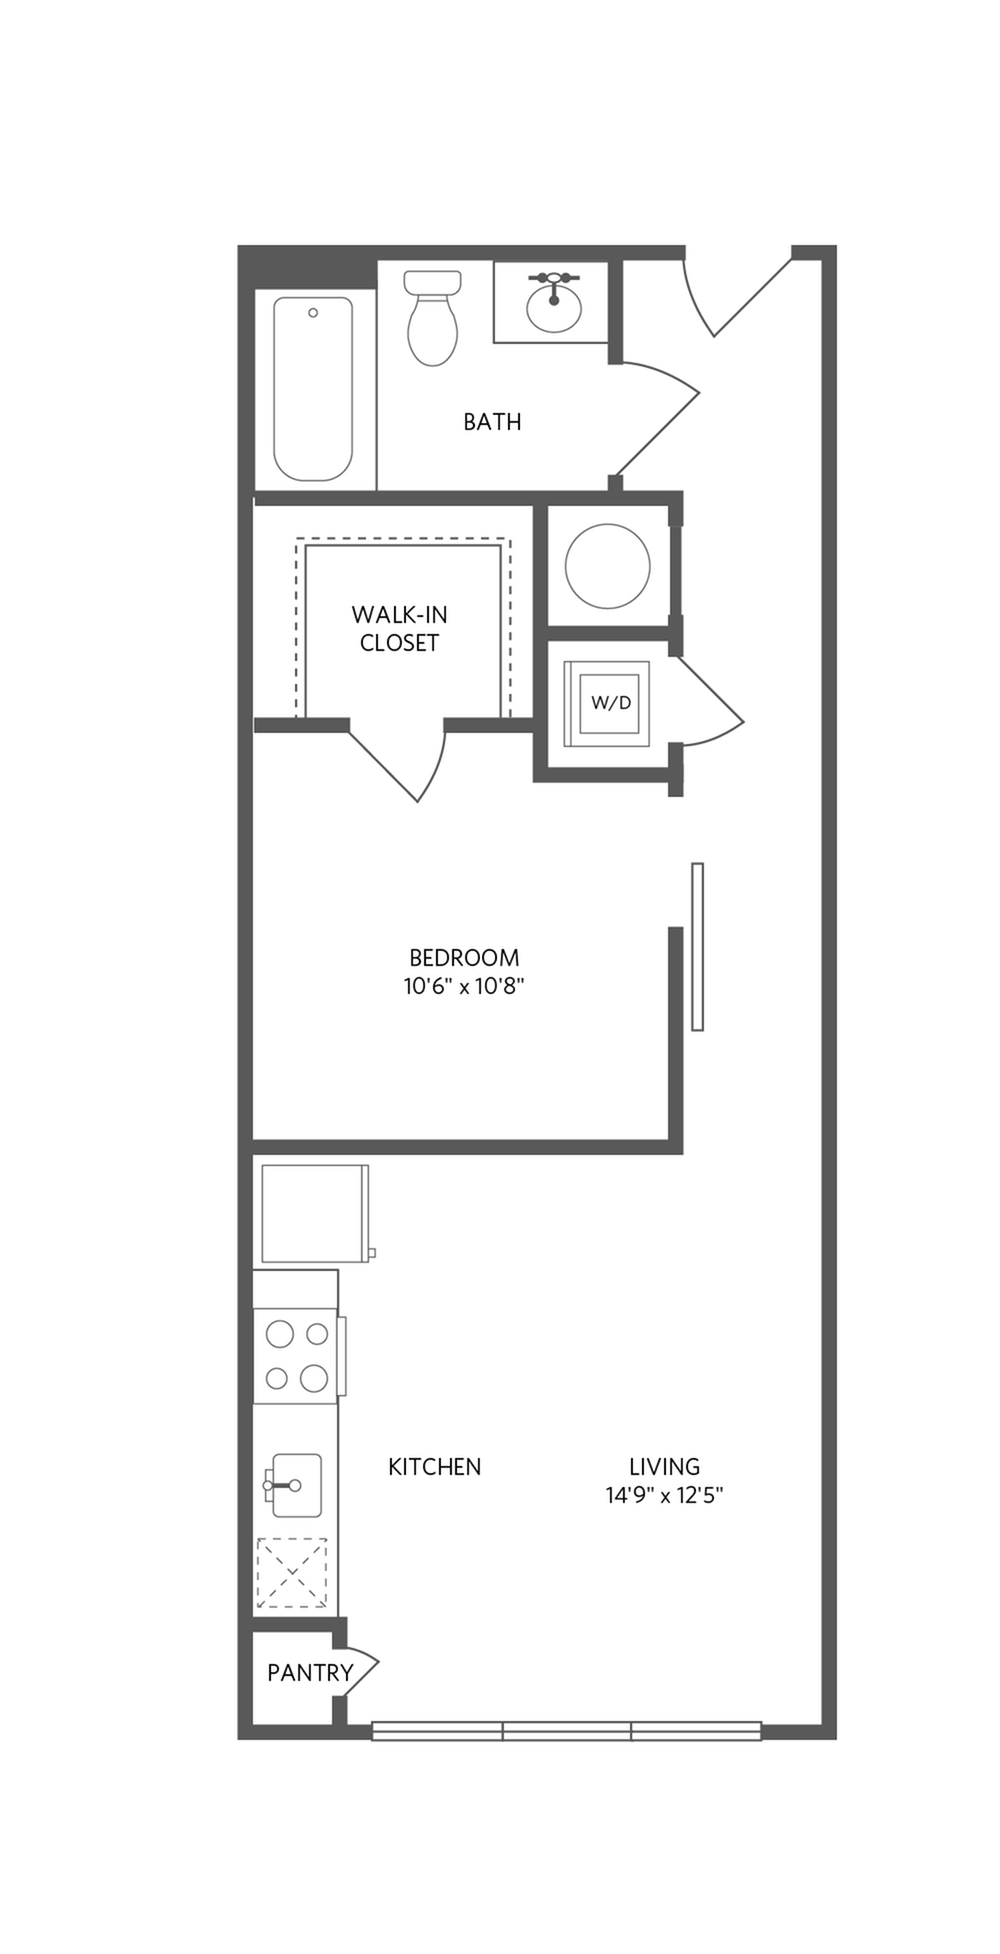 590 square foot one bedroom one bath apartment floorplan image